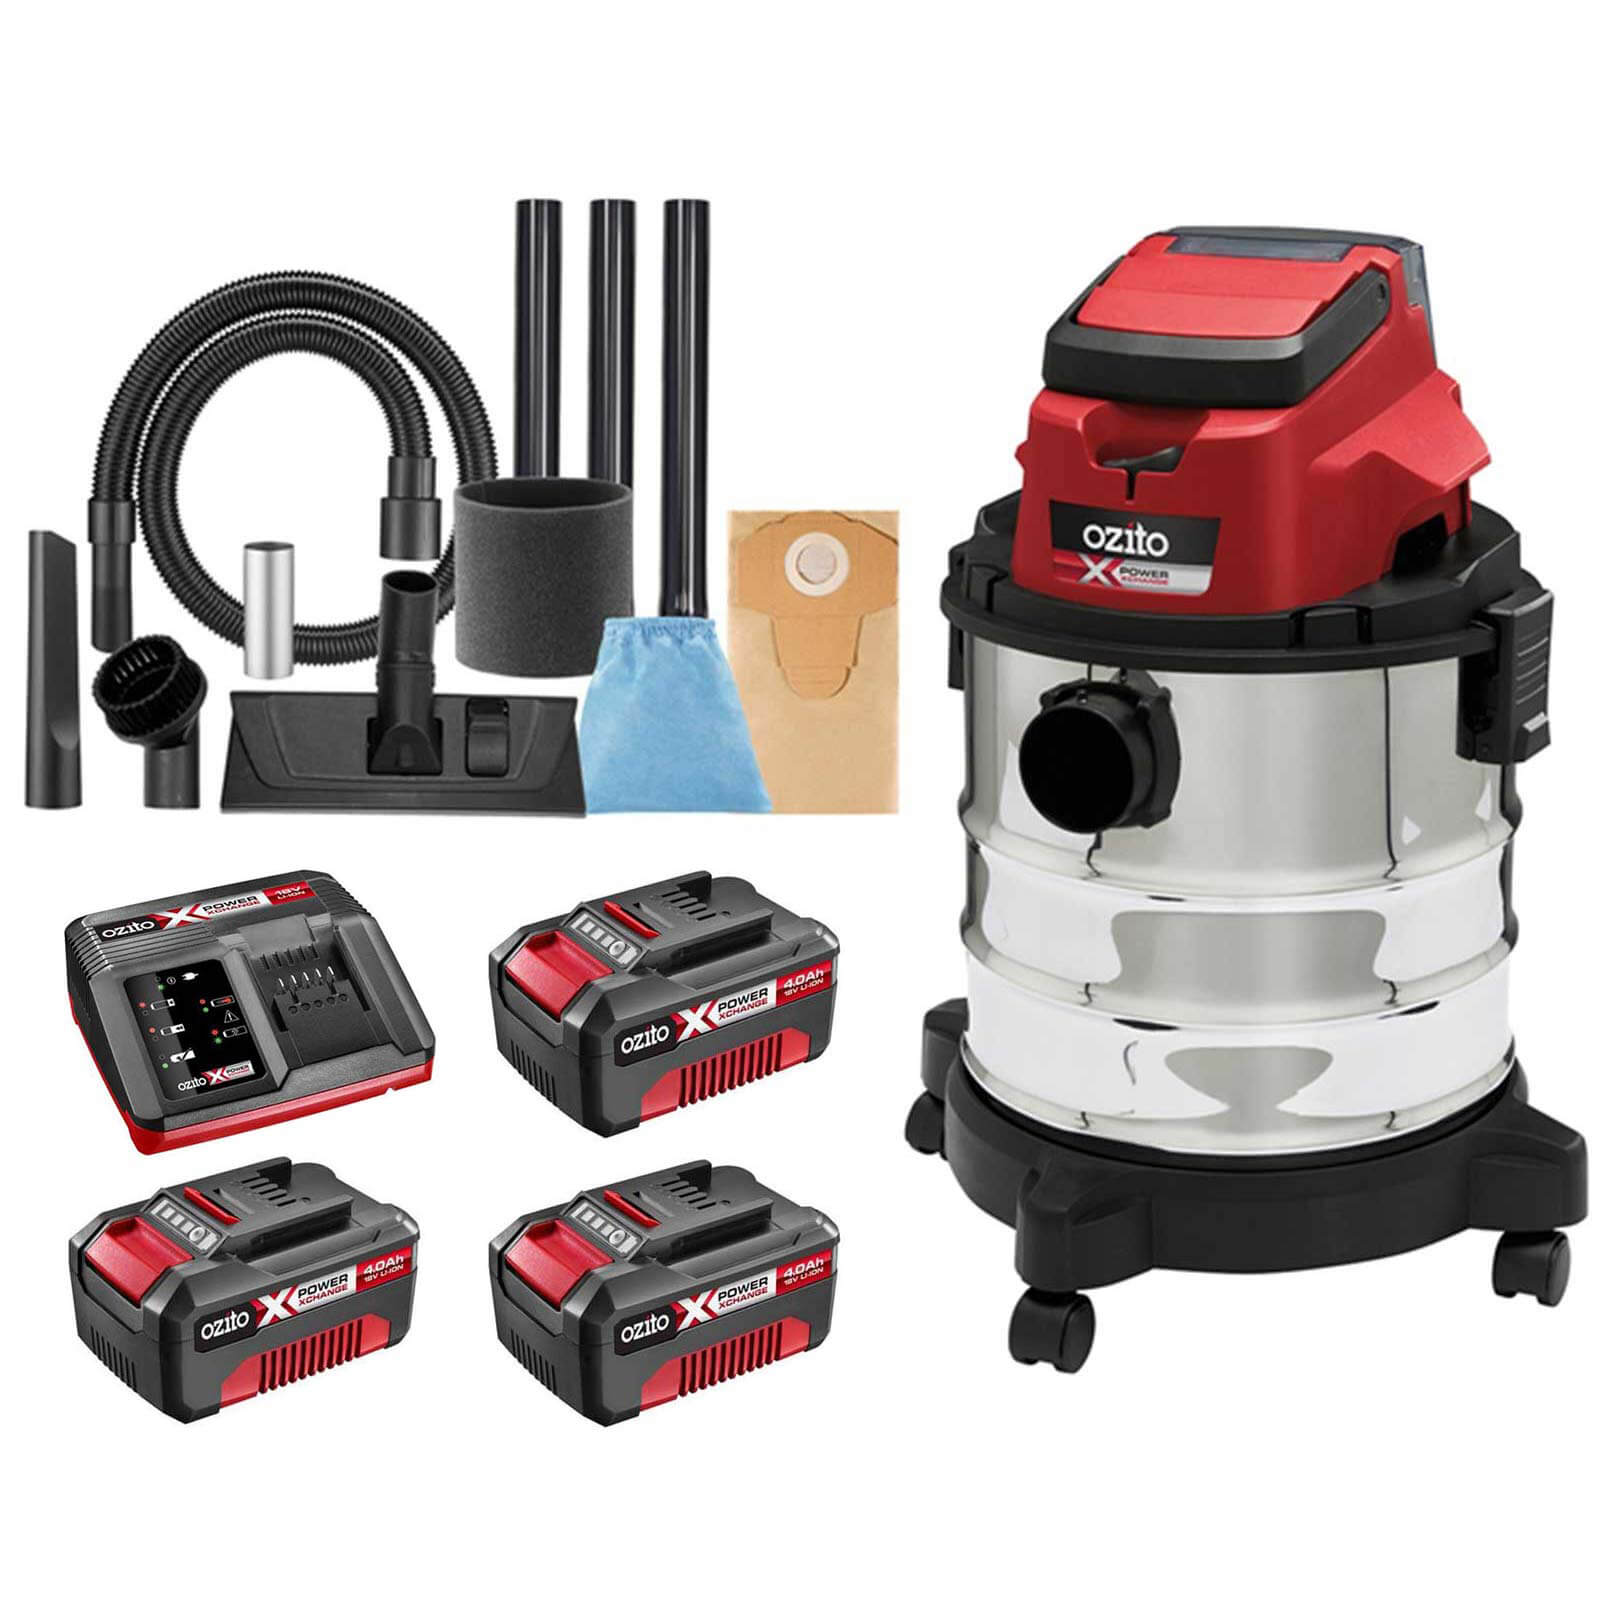 Ozito PXVWD 18v Cordless Mini Wet and Dry Vacuum Cleaner 3 x 4ah Li-ion Charger No Case